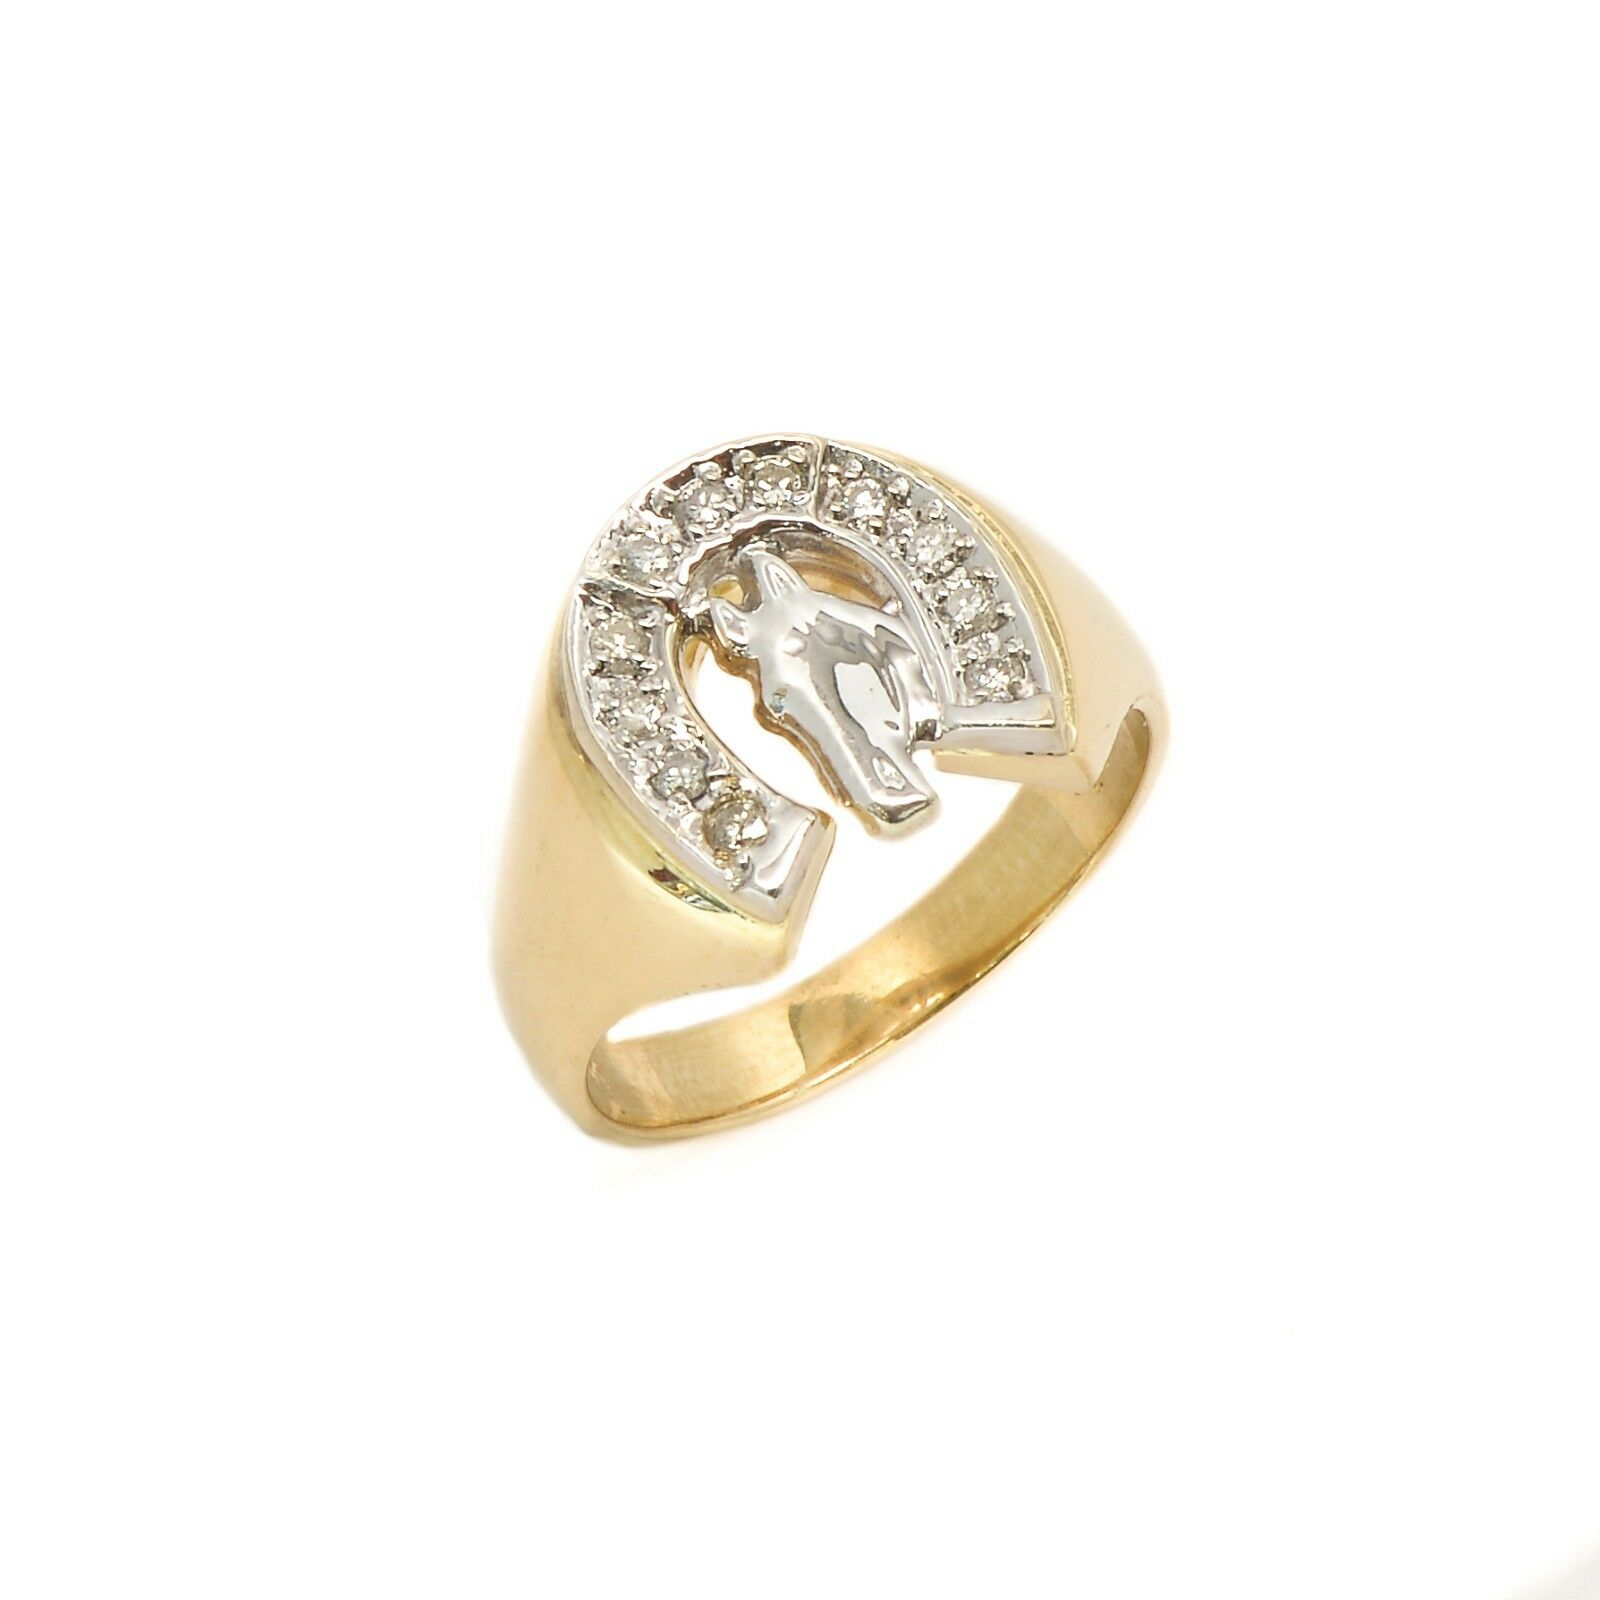 77f01e068b1fb 0.30 Yellow 14KT Style shoes Horse Classic Ring CT gold 8.5 Size ...